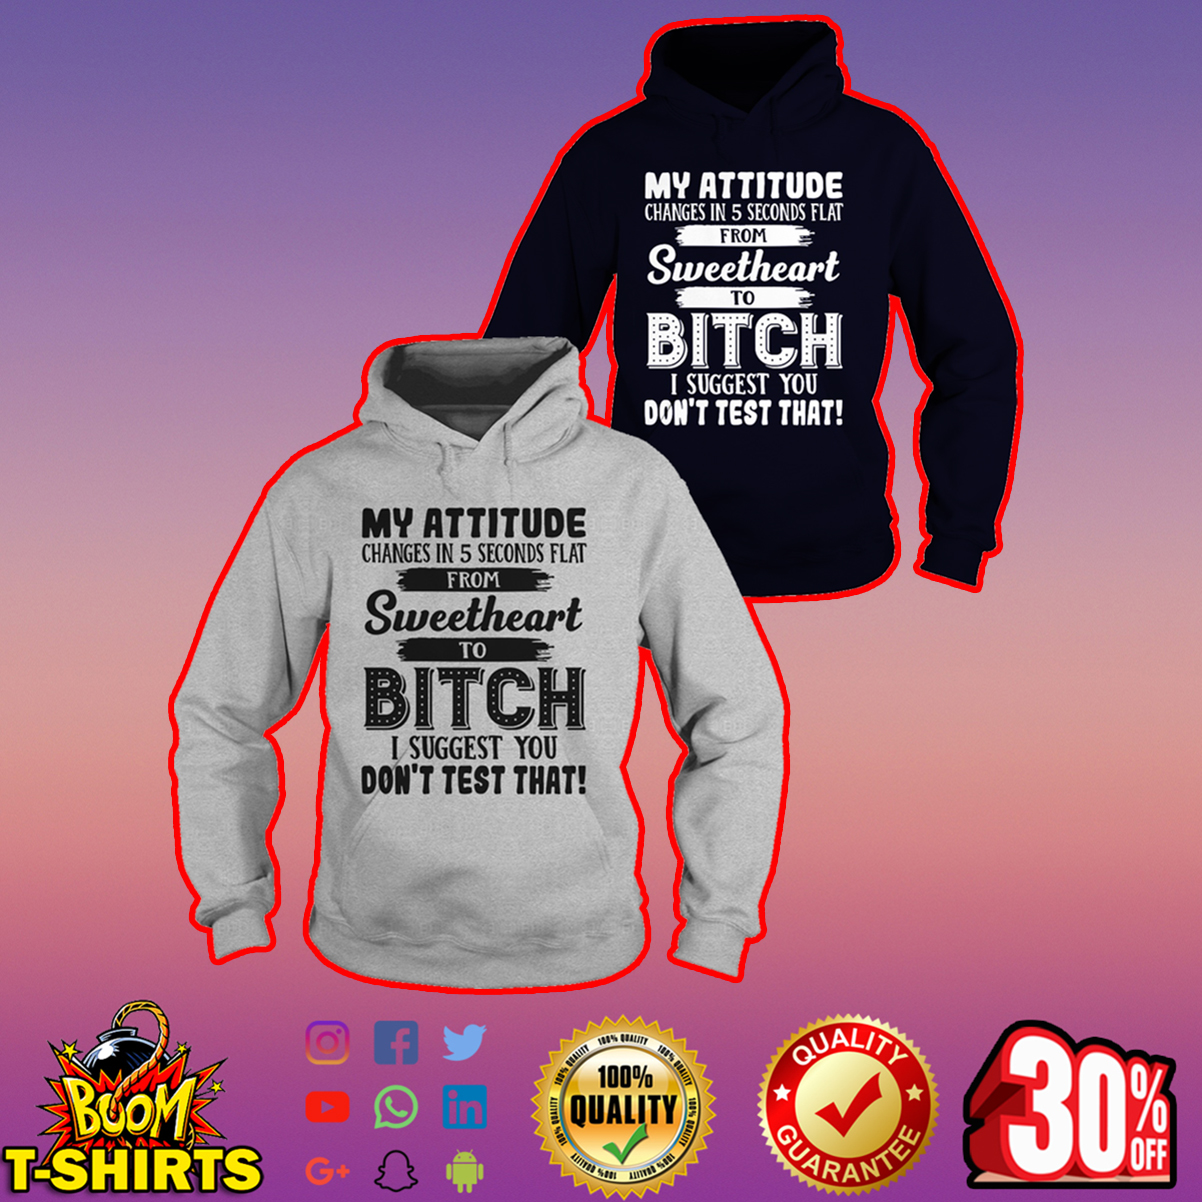 My attitude changes in 5 seconds flat from sweetheart to bitch hoodie